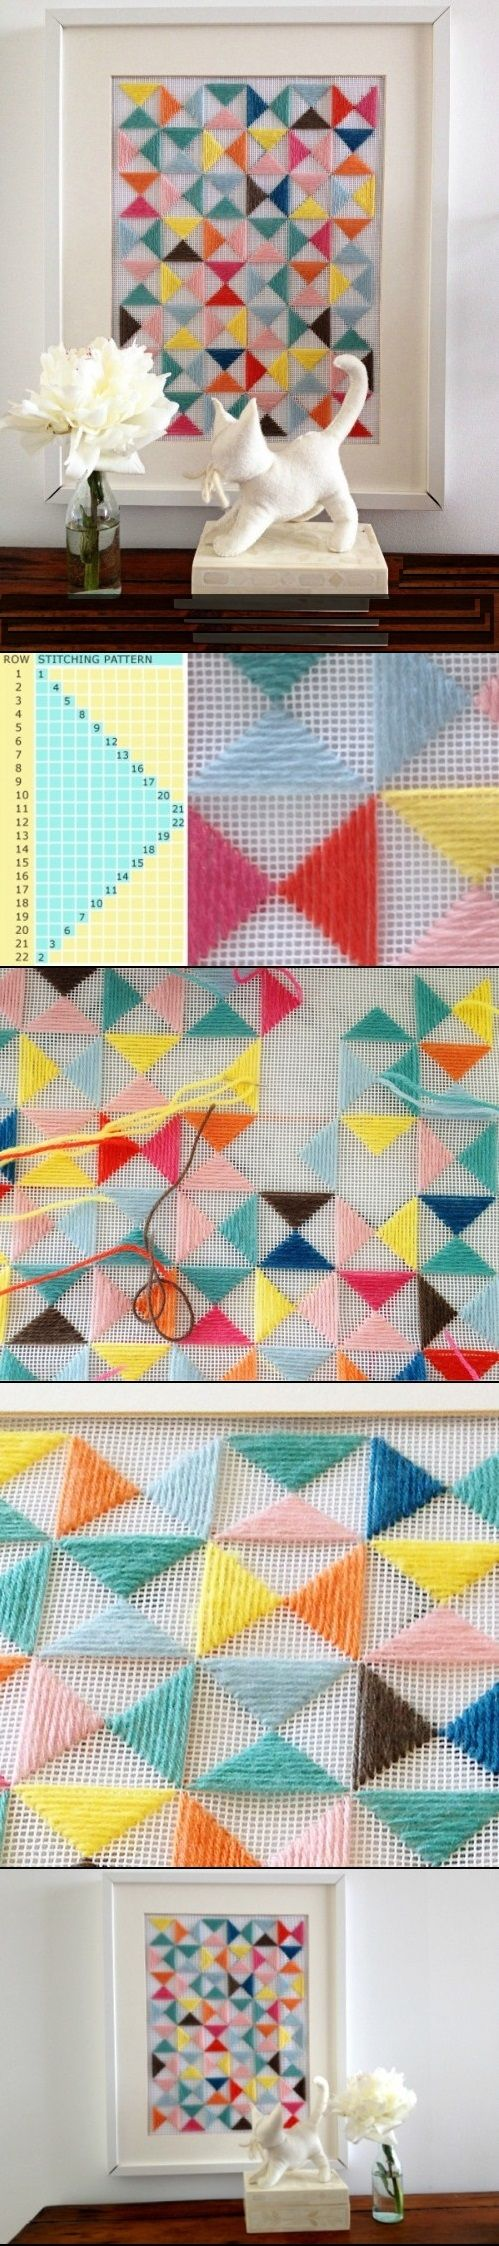 DIY Geometric Embroidery for wall art. I would like to try with tshirts into a quilt pattern